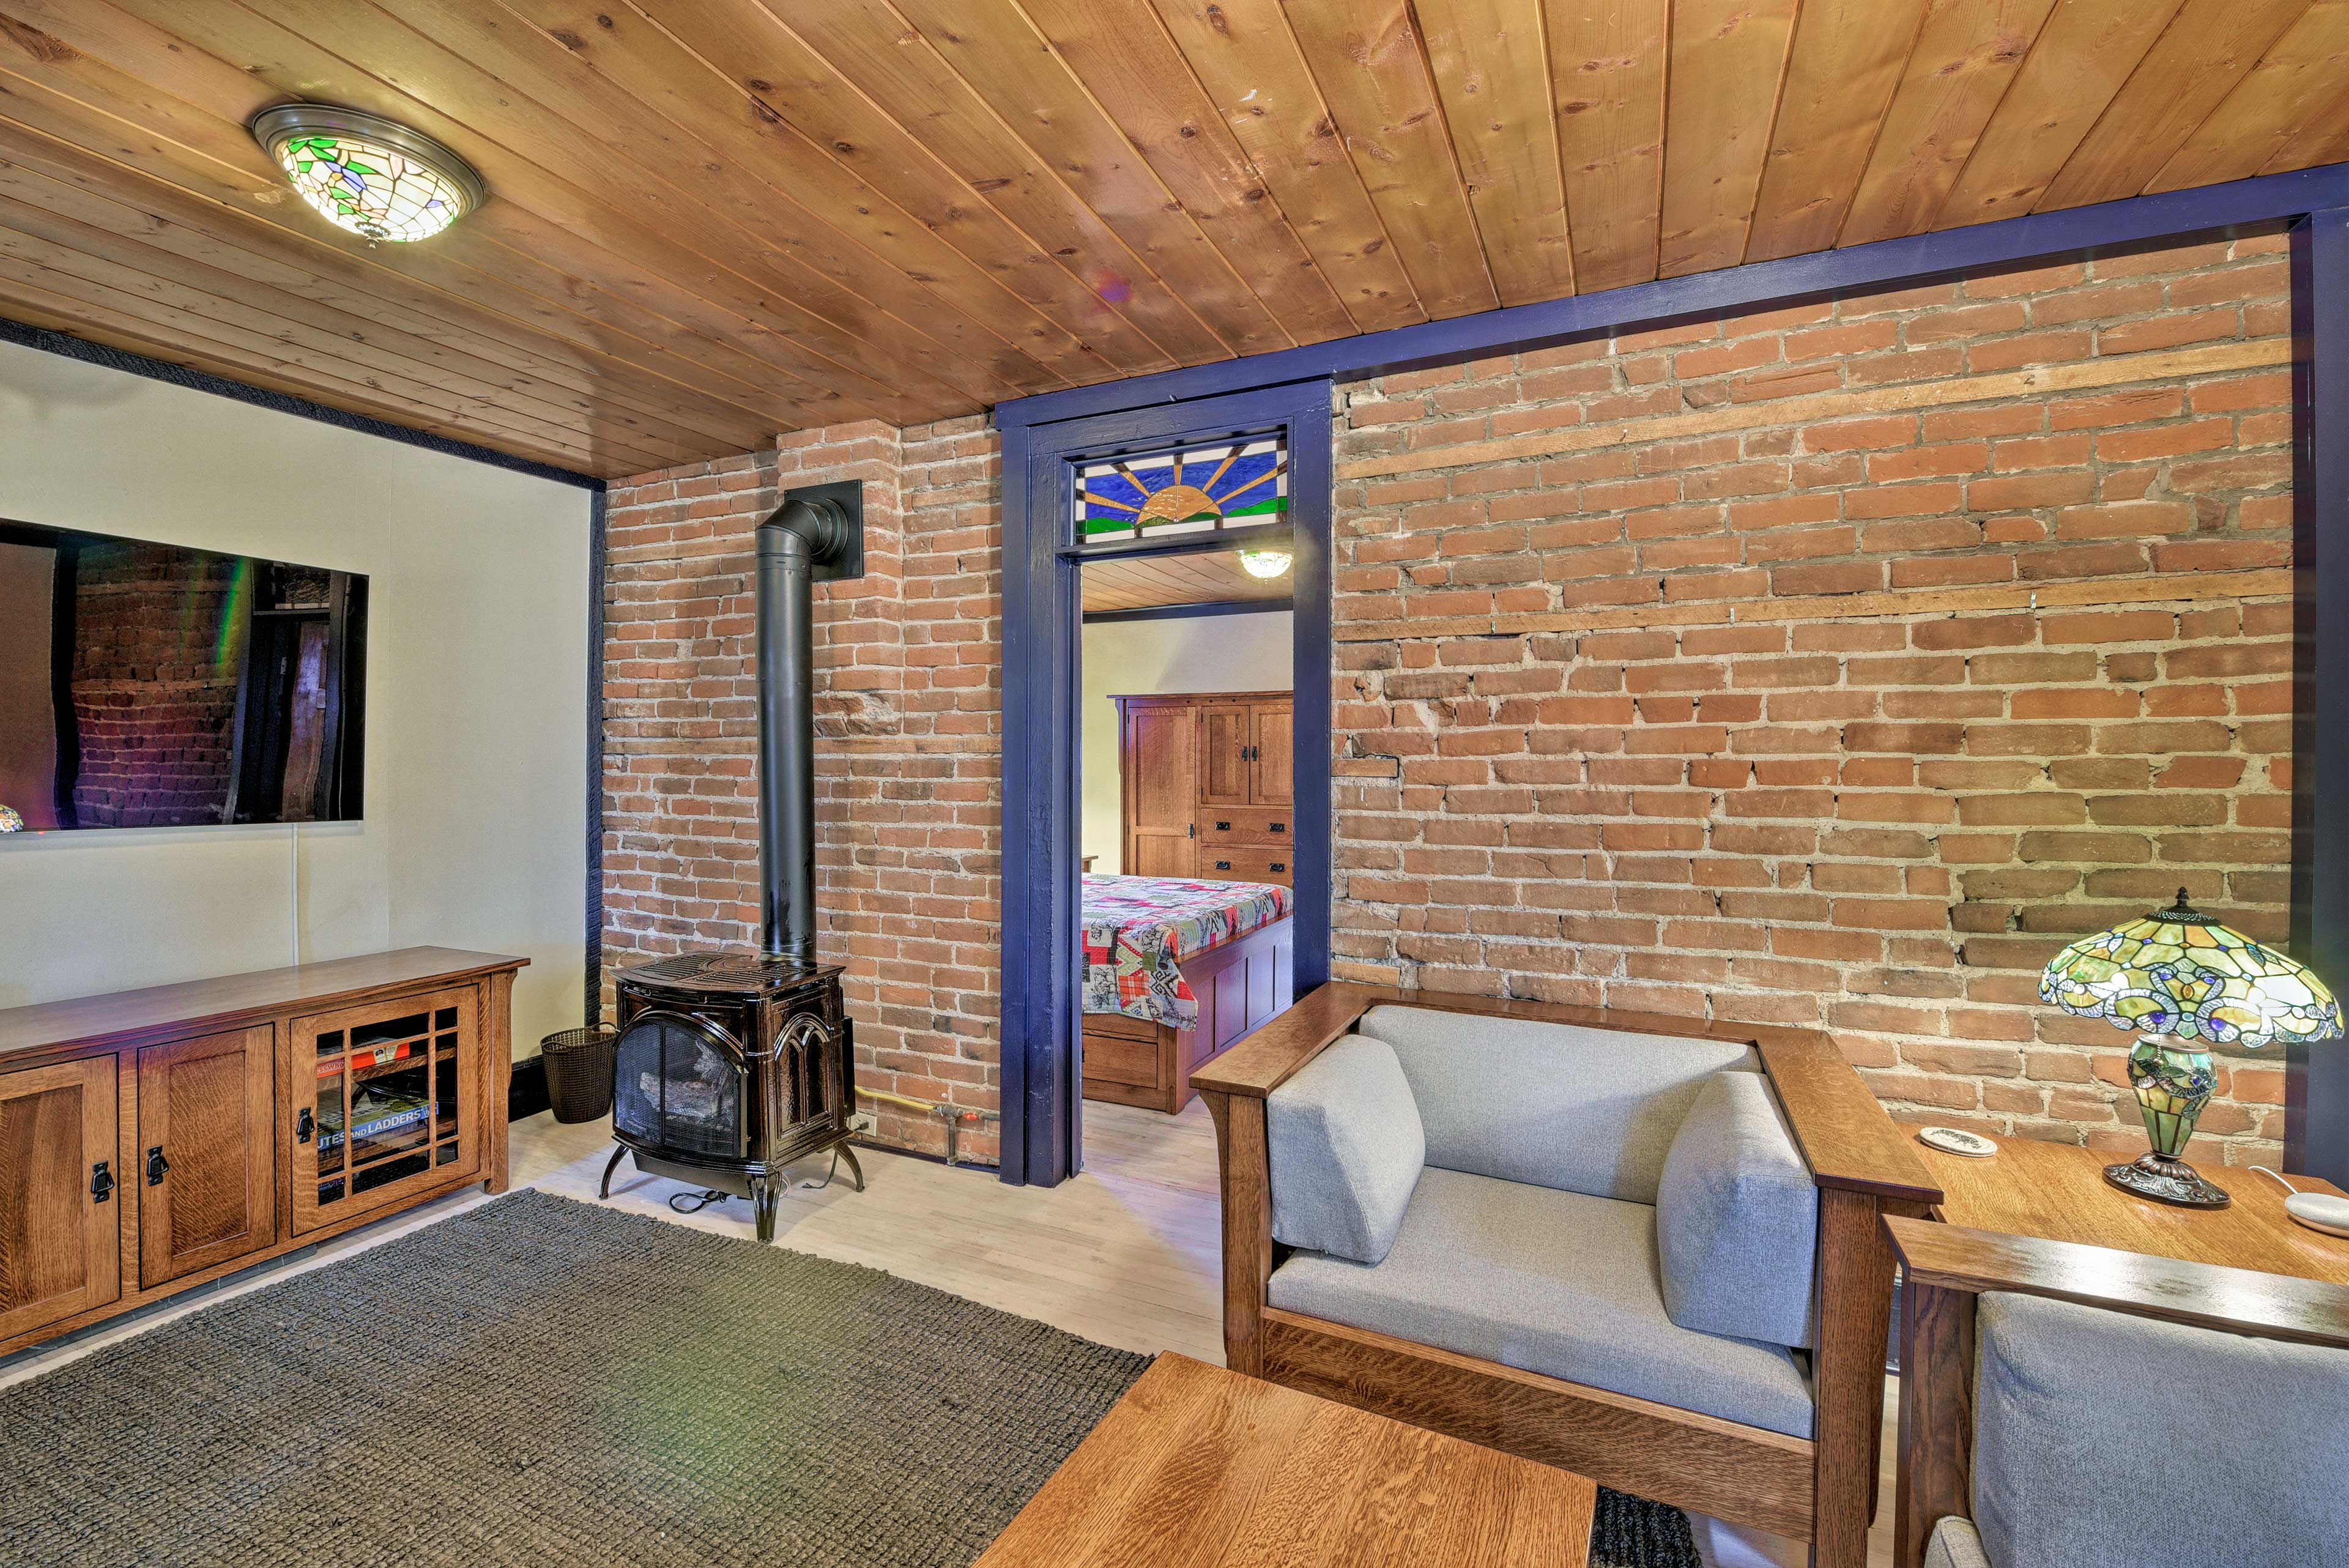 Enjoy Salida in style at this 1-bedroom, 1-bath vacation rental for 6.